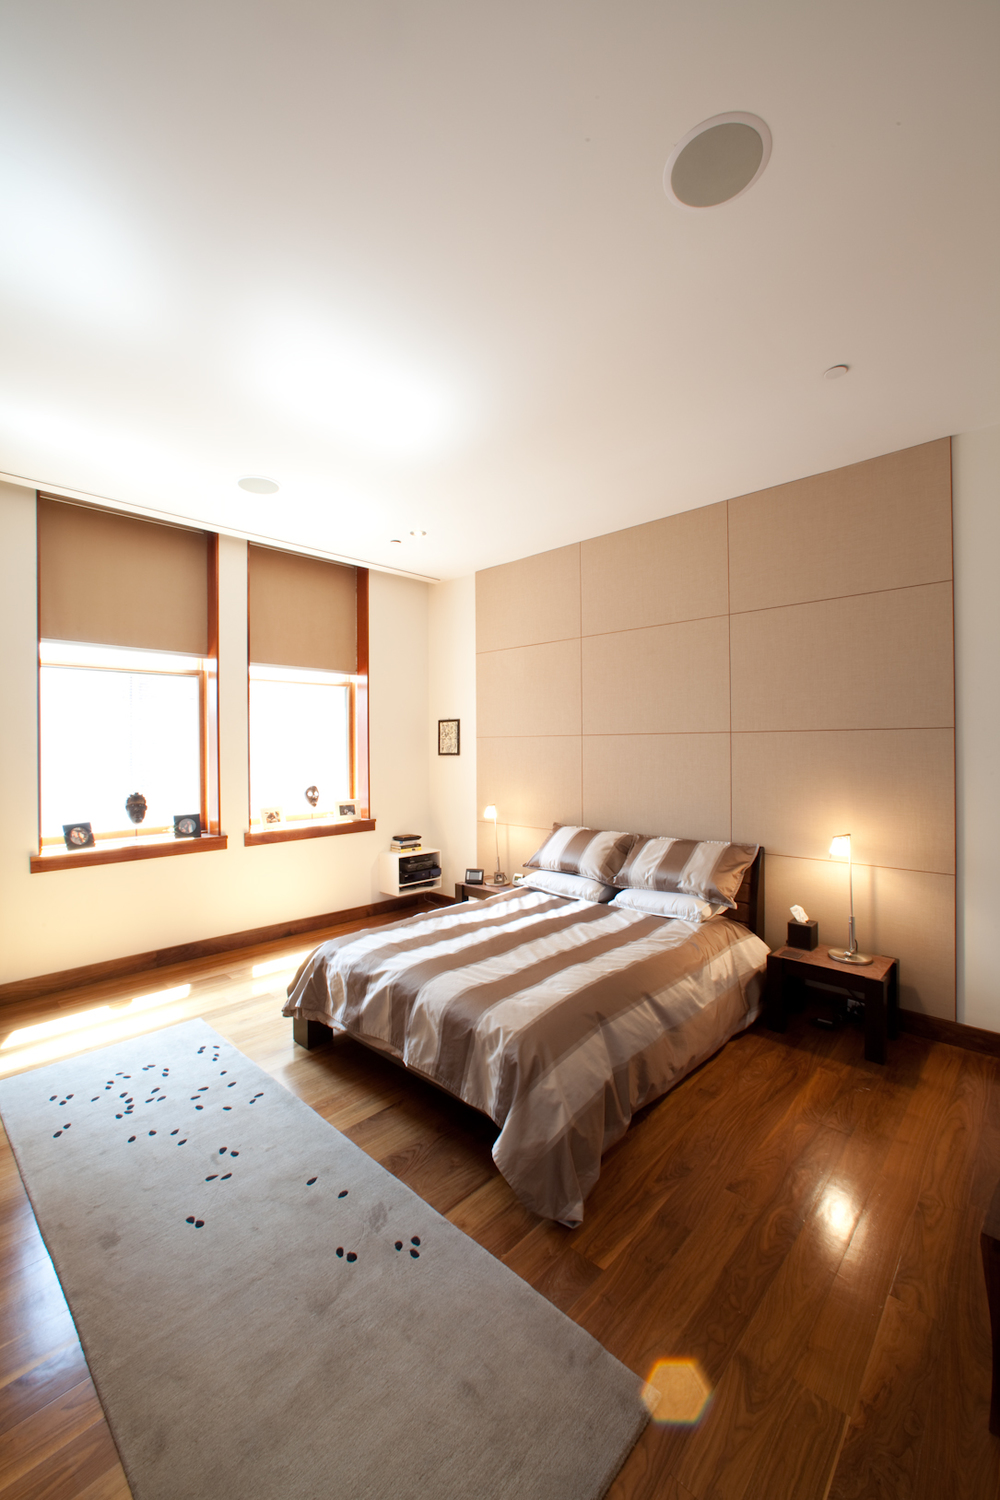 22 Mercer, Soho, Bedroom